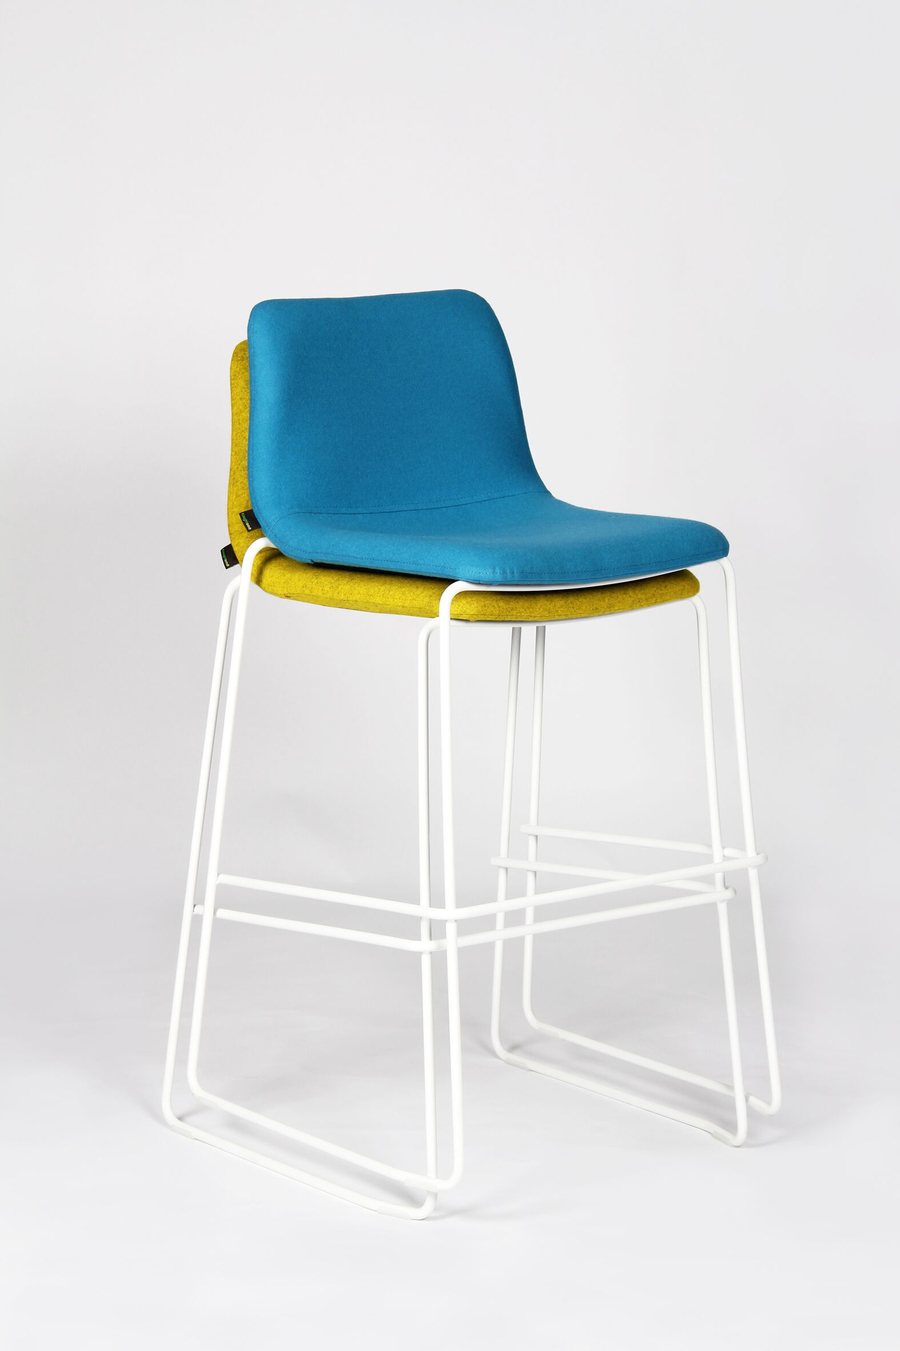 A blue Viv Stool with a white metal base stacked ontop of a green Viv Stool with a white metal base, viewed at an angle.